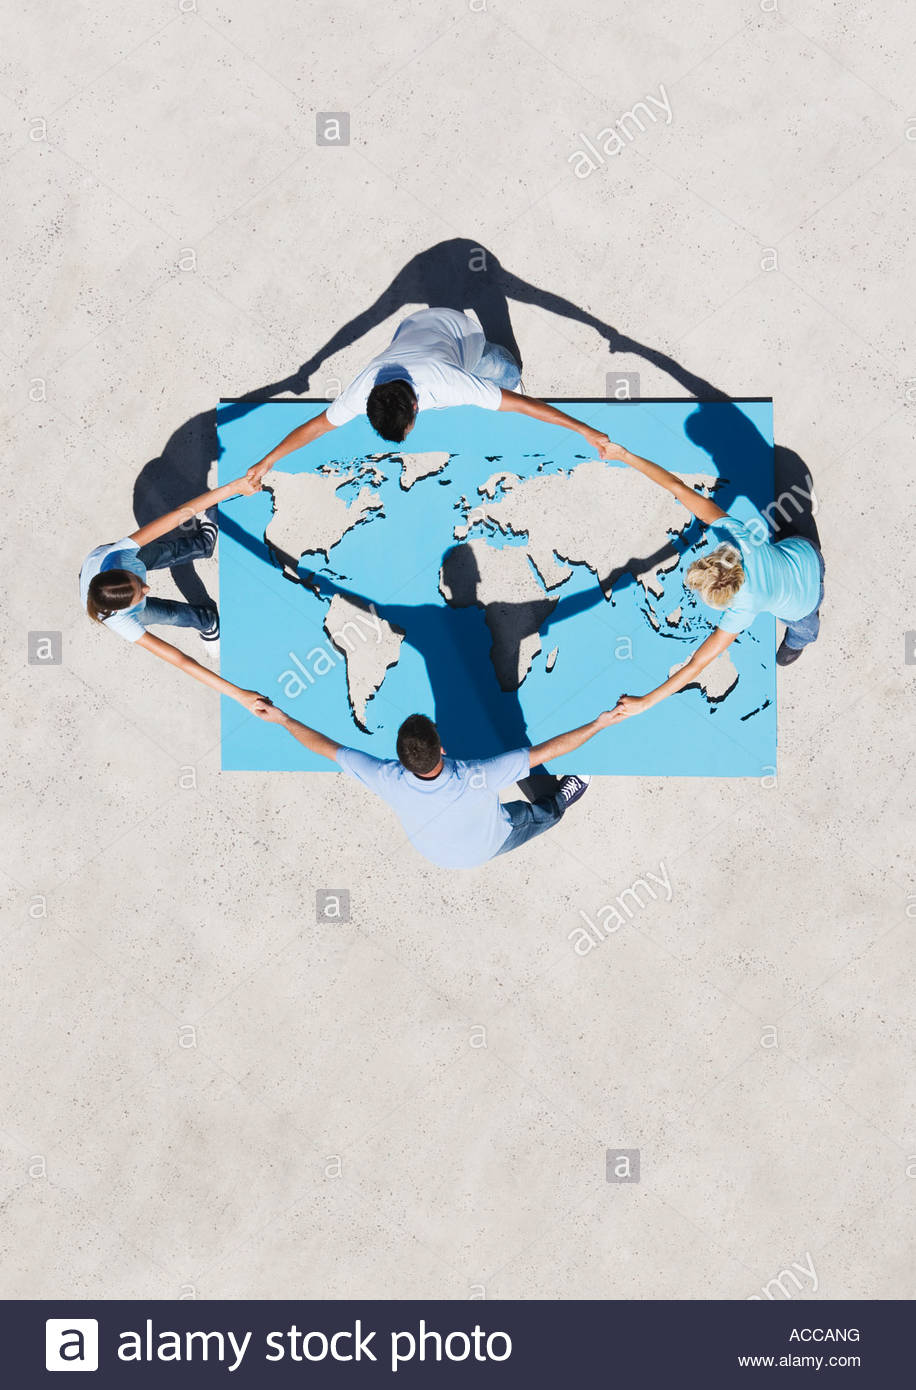 Four people holding hands above world map outdoors - Stock Image